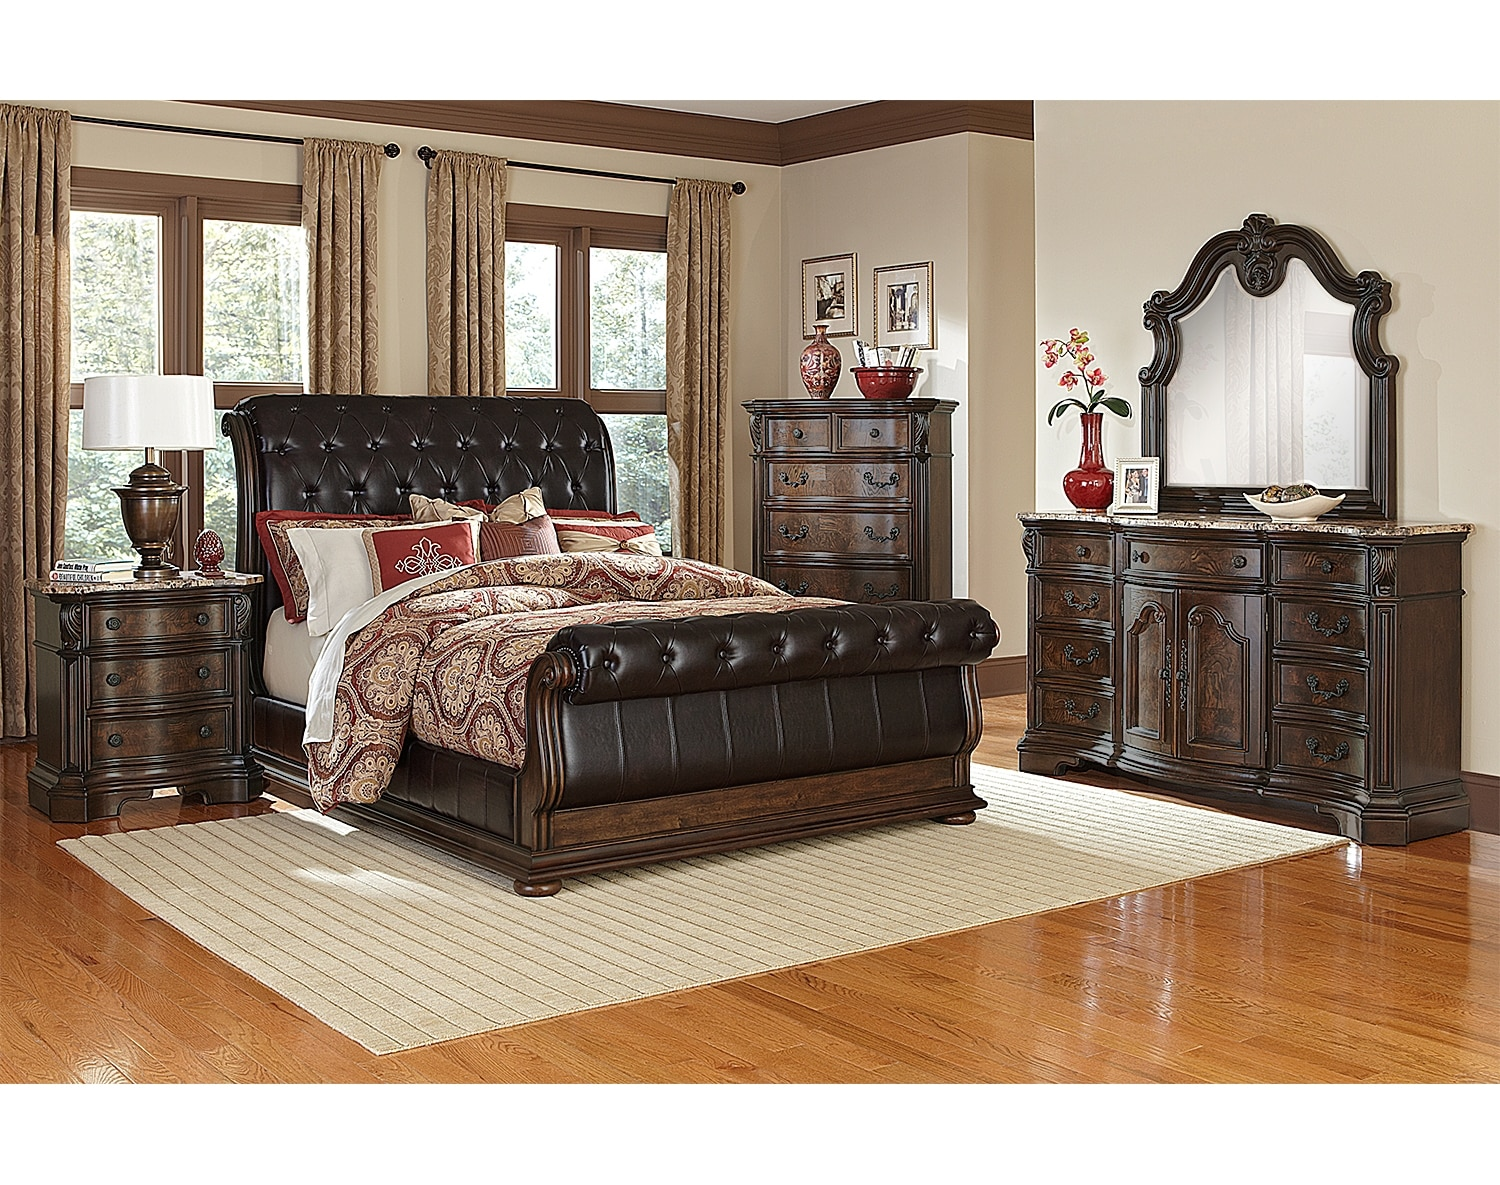 The Monticello Sleigh Bedroom Collection - Pecan